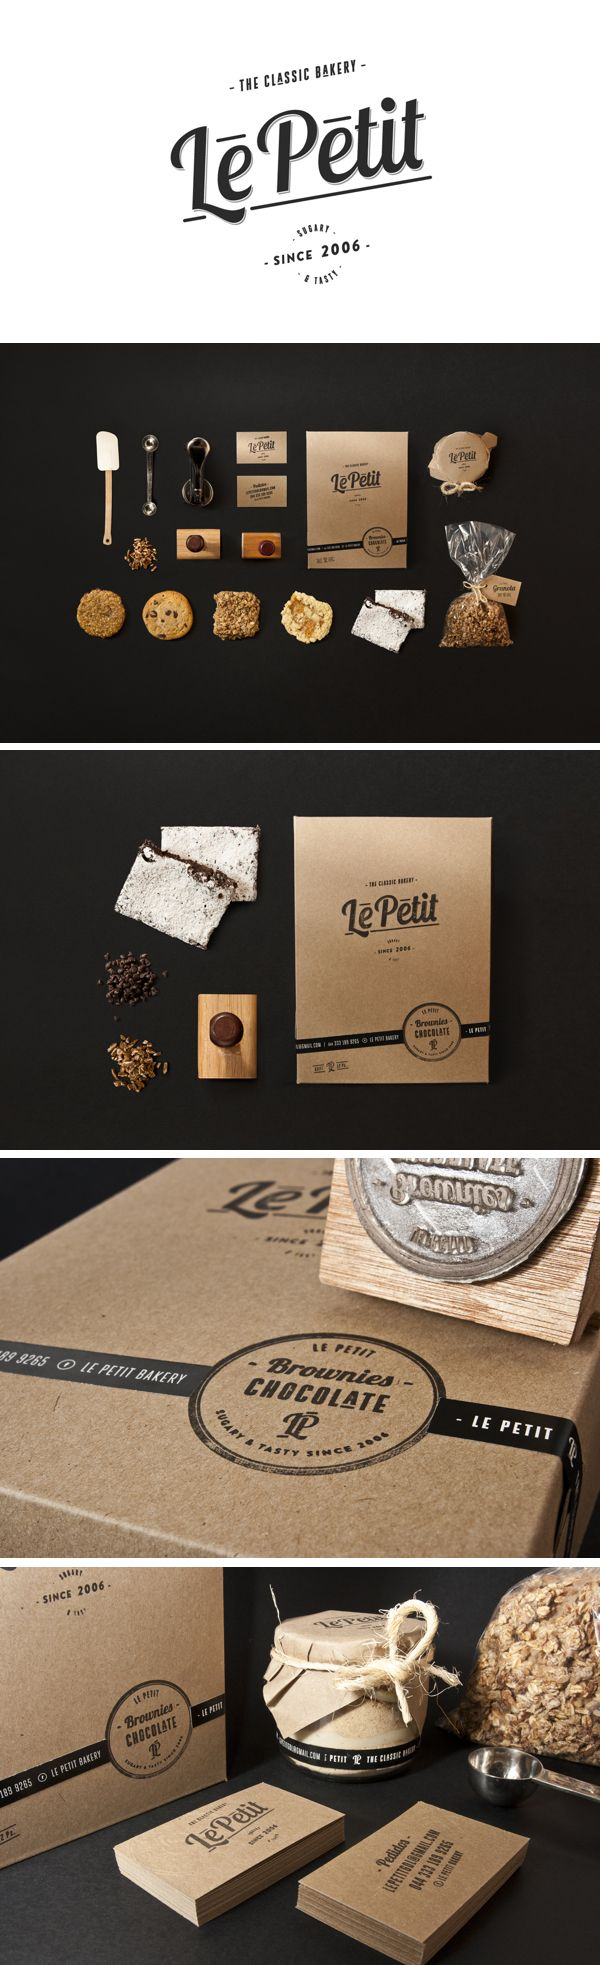 Le Petit Bakery by Manuel Navarro Orozco, via Behance